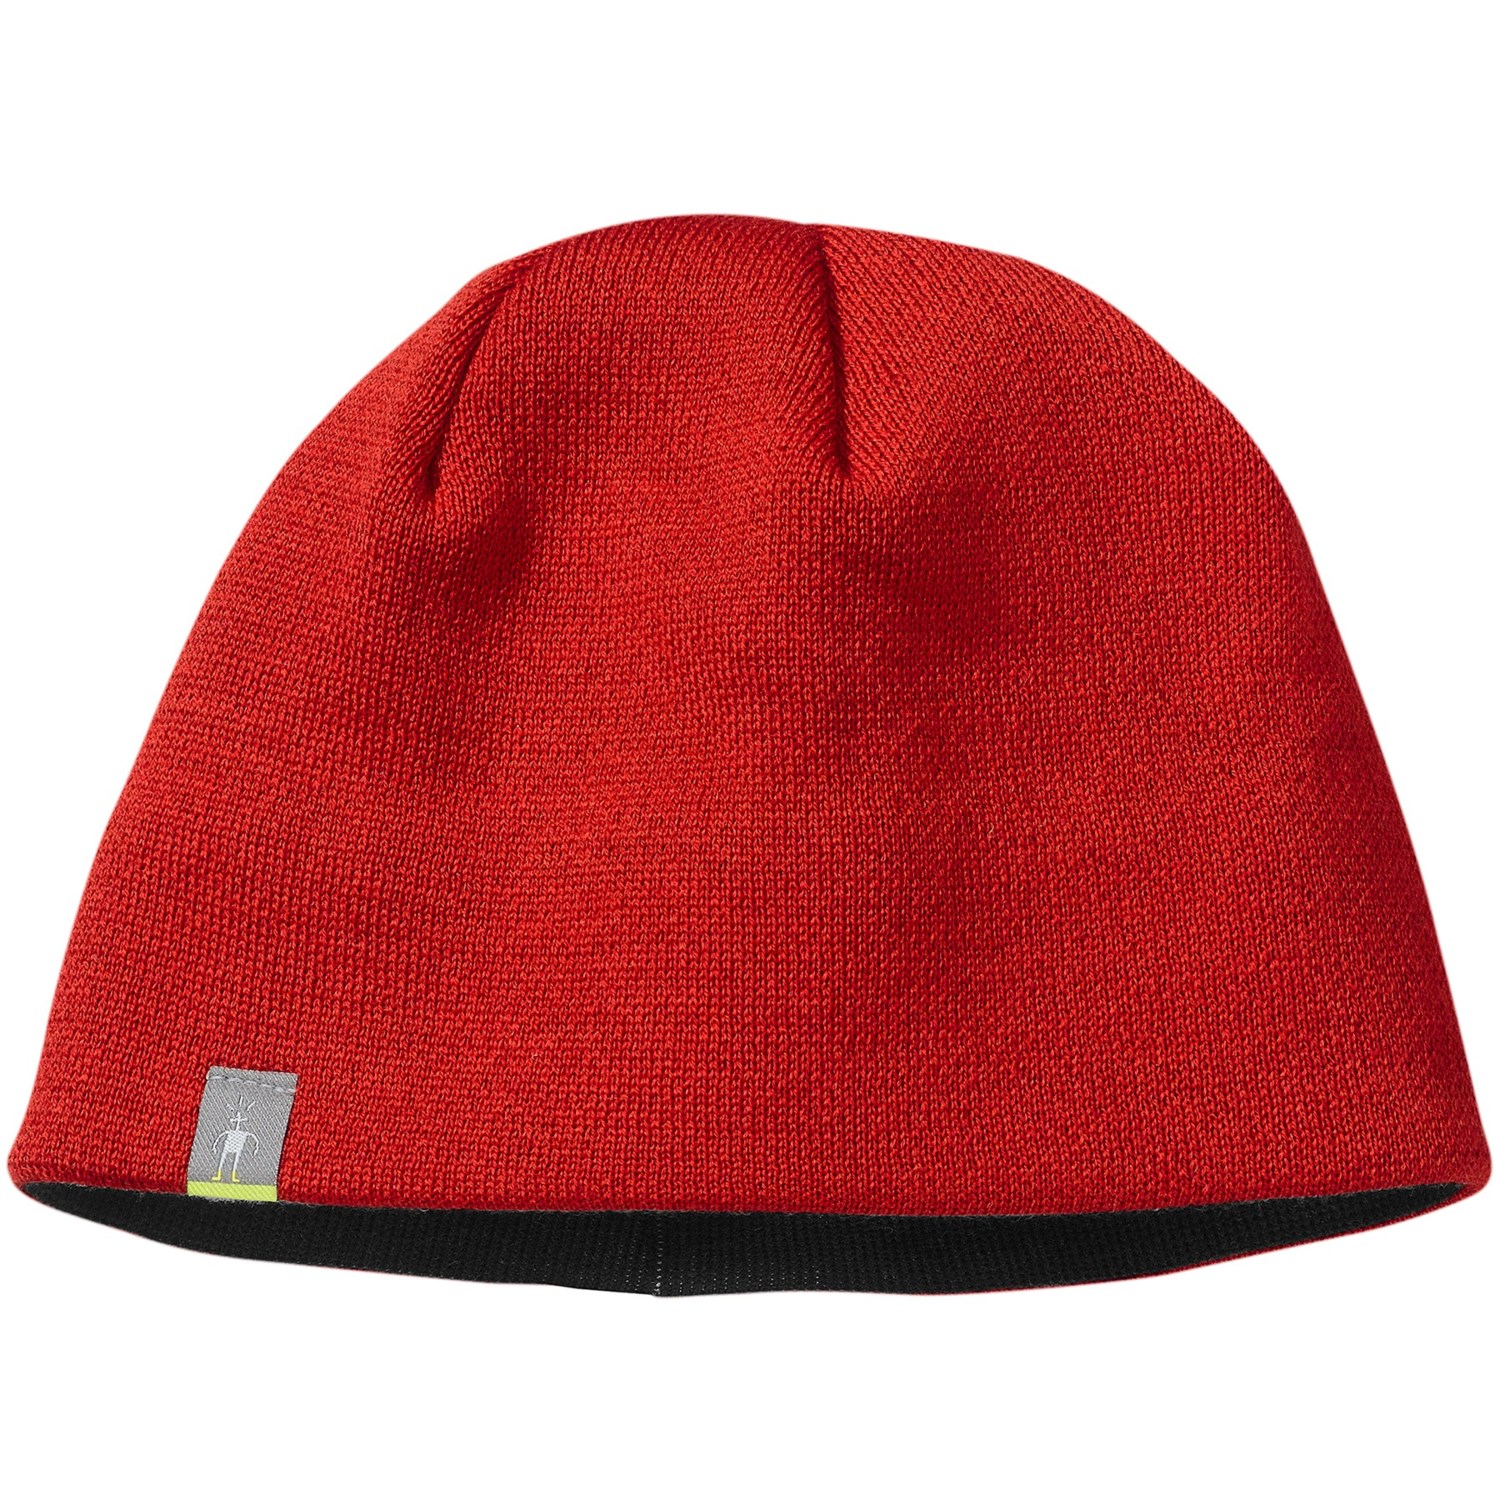 smartwool the lid beanie hat for and